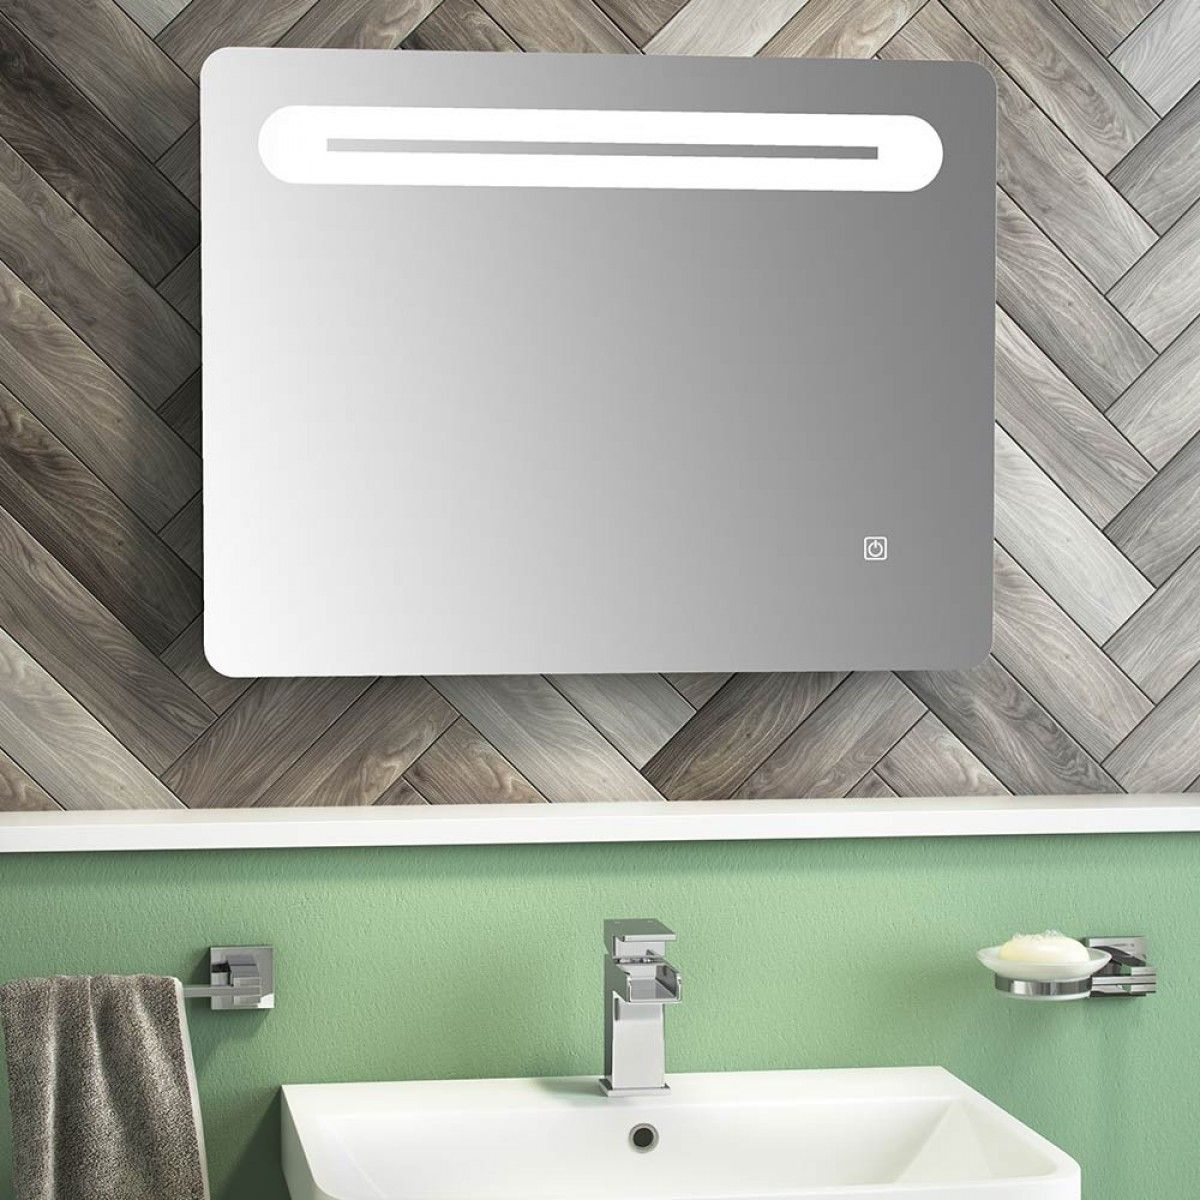 This brand new mirror from the Eliseo Ricci range is a